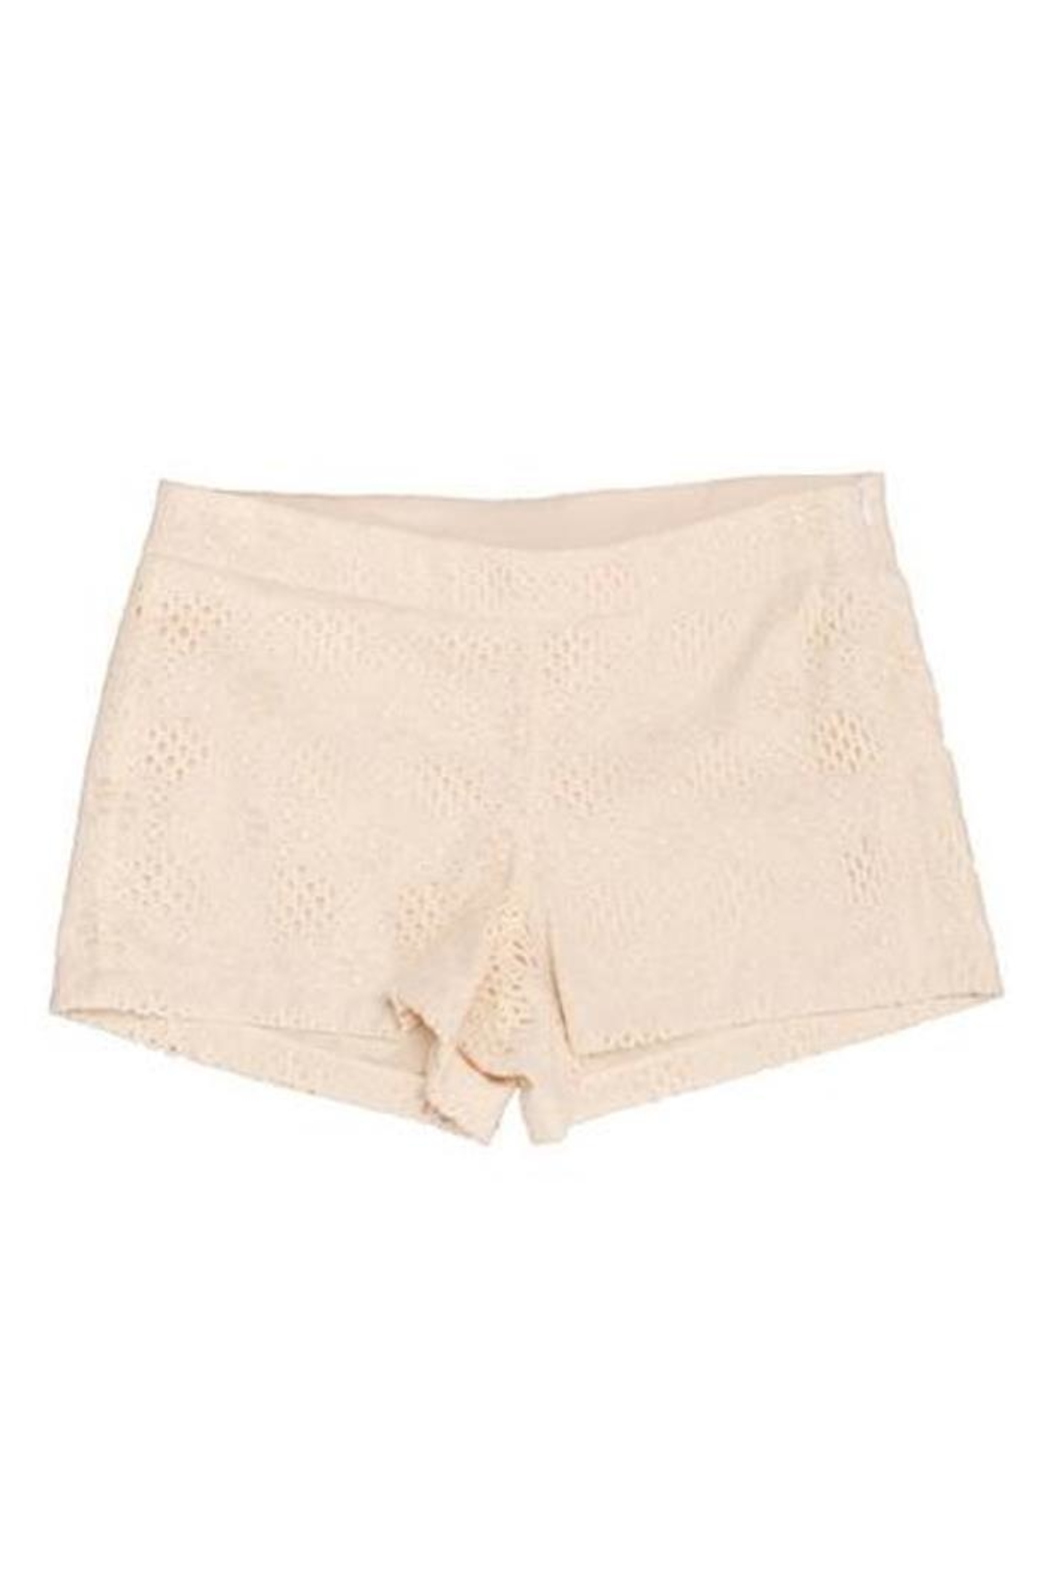 Judith March Ivory Lace Shorts - Front Full Image